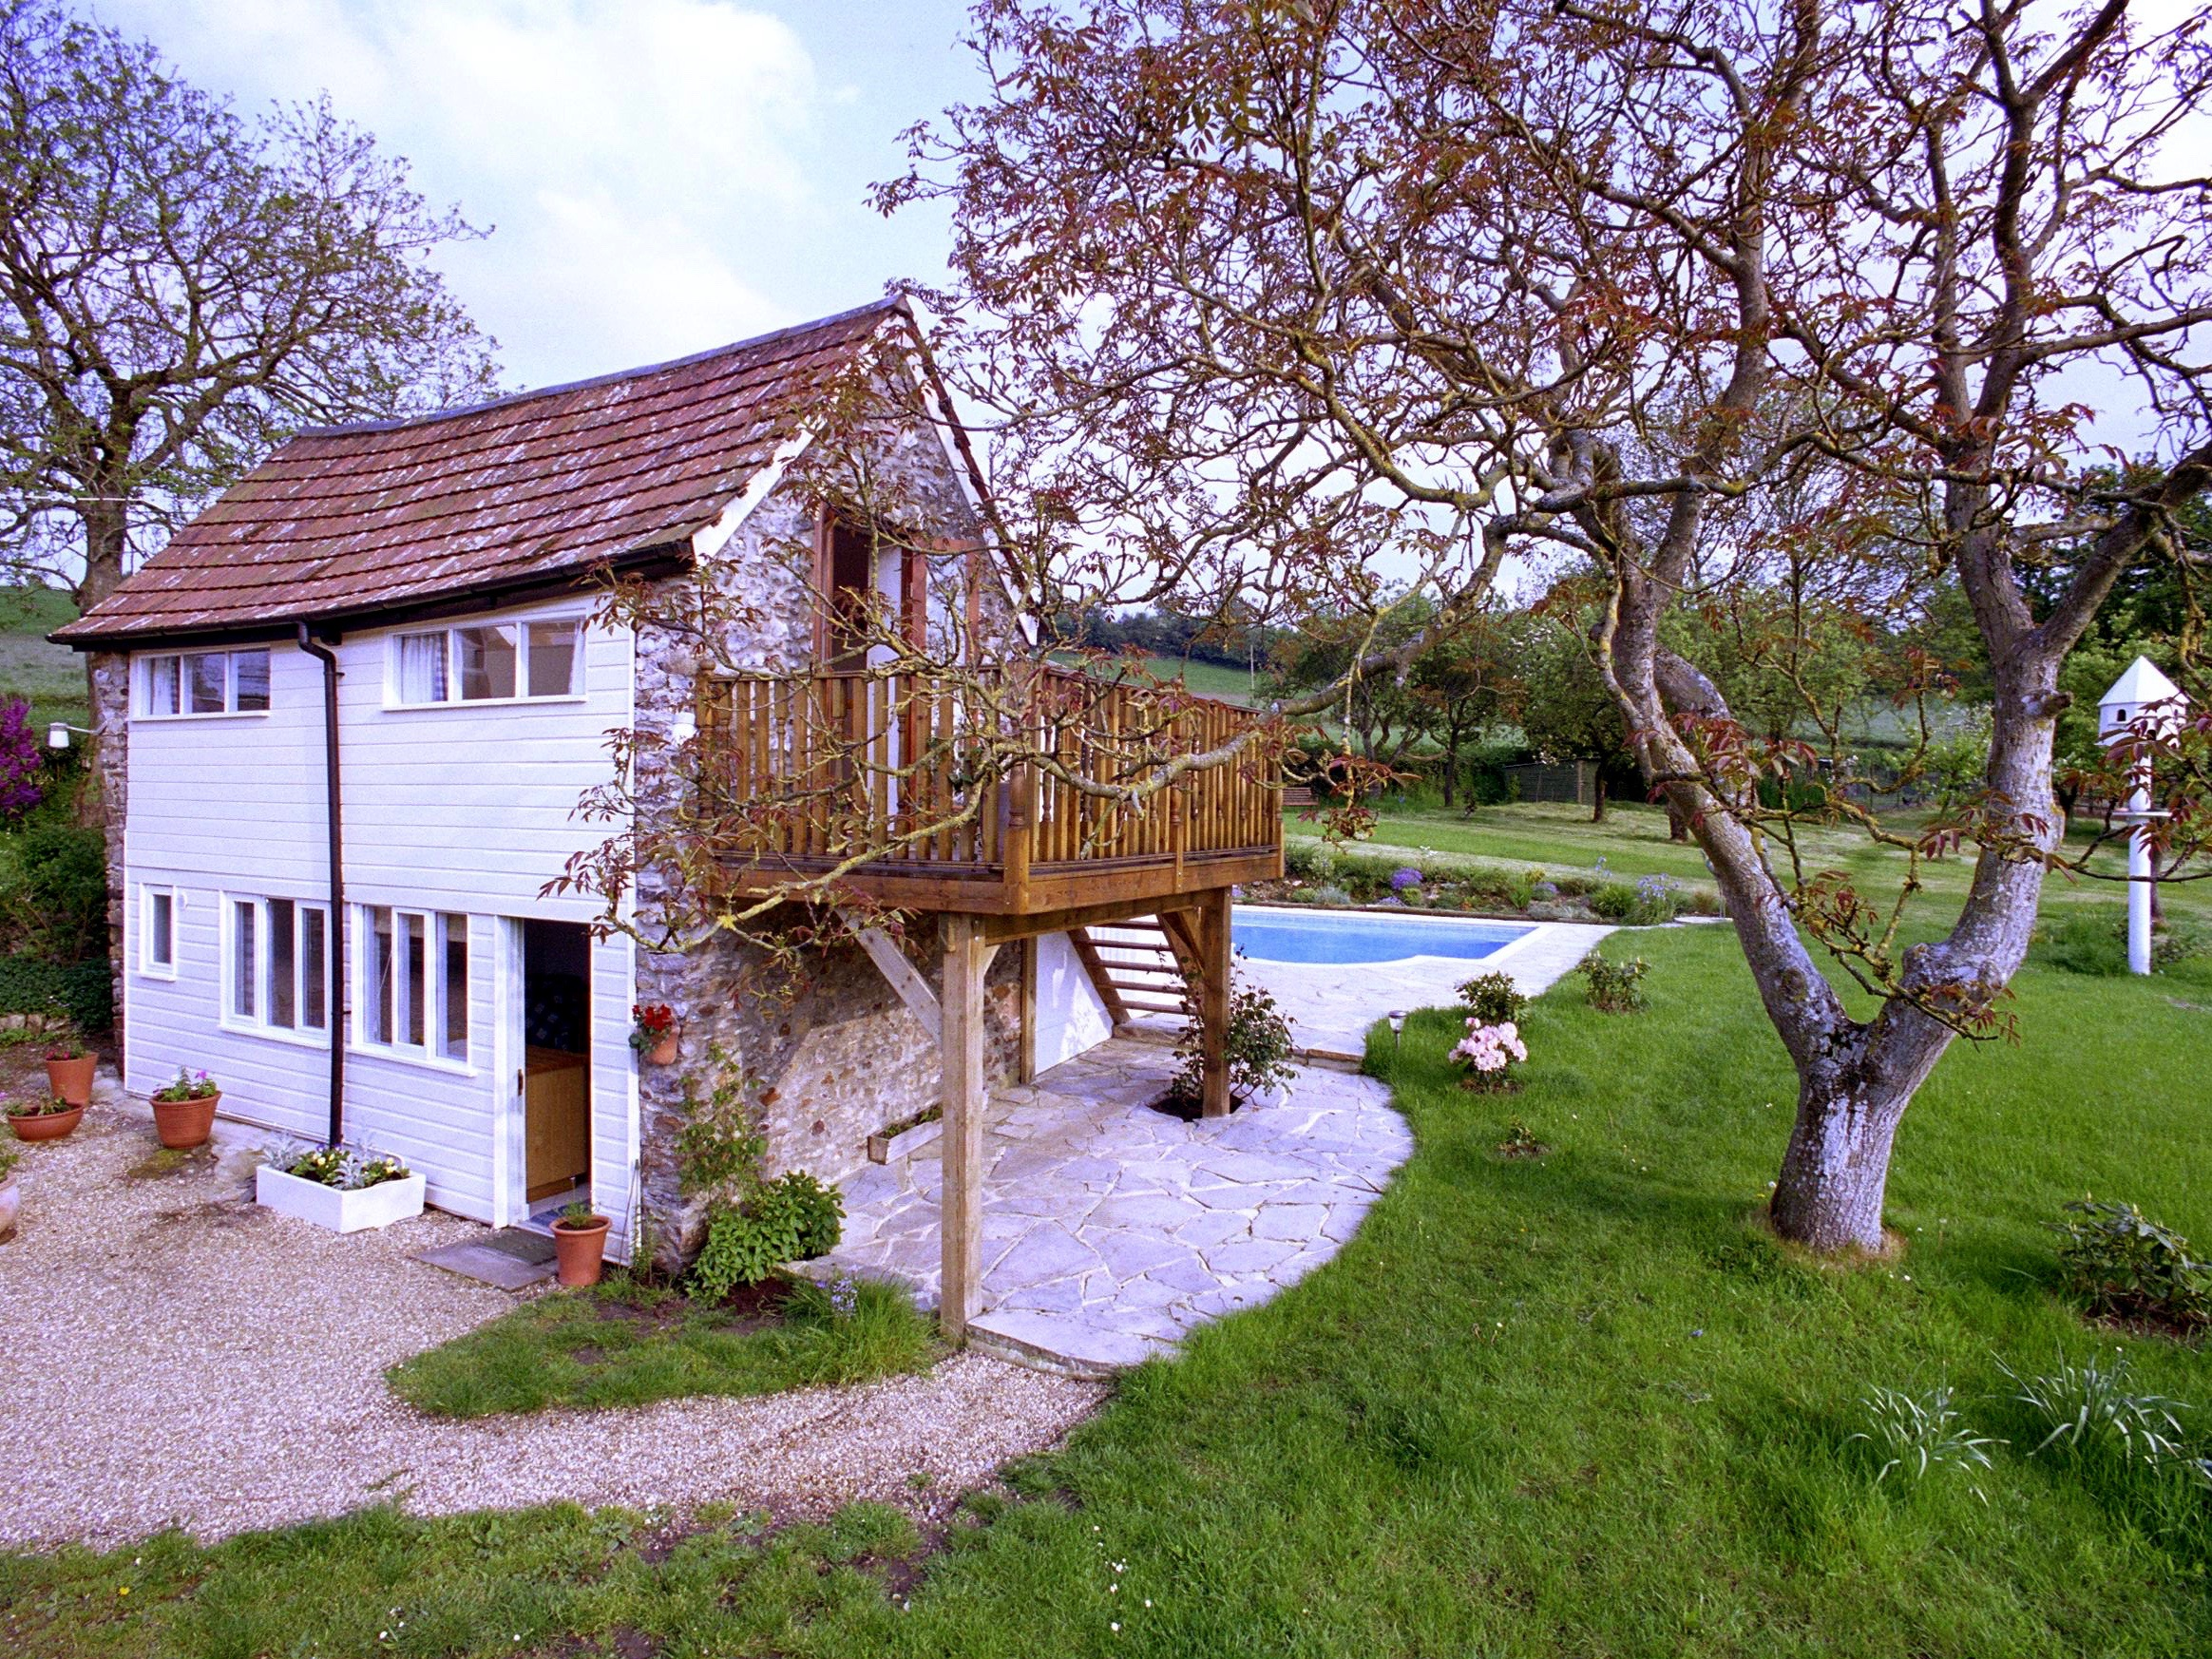 Cottage breaks with swimming pool + BBQ  in The Blackdown Hills, South West, West Country